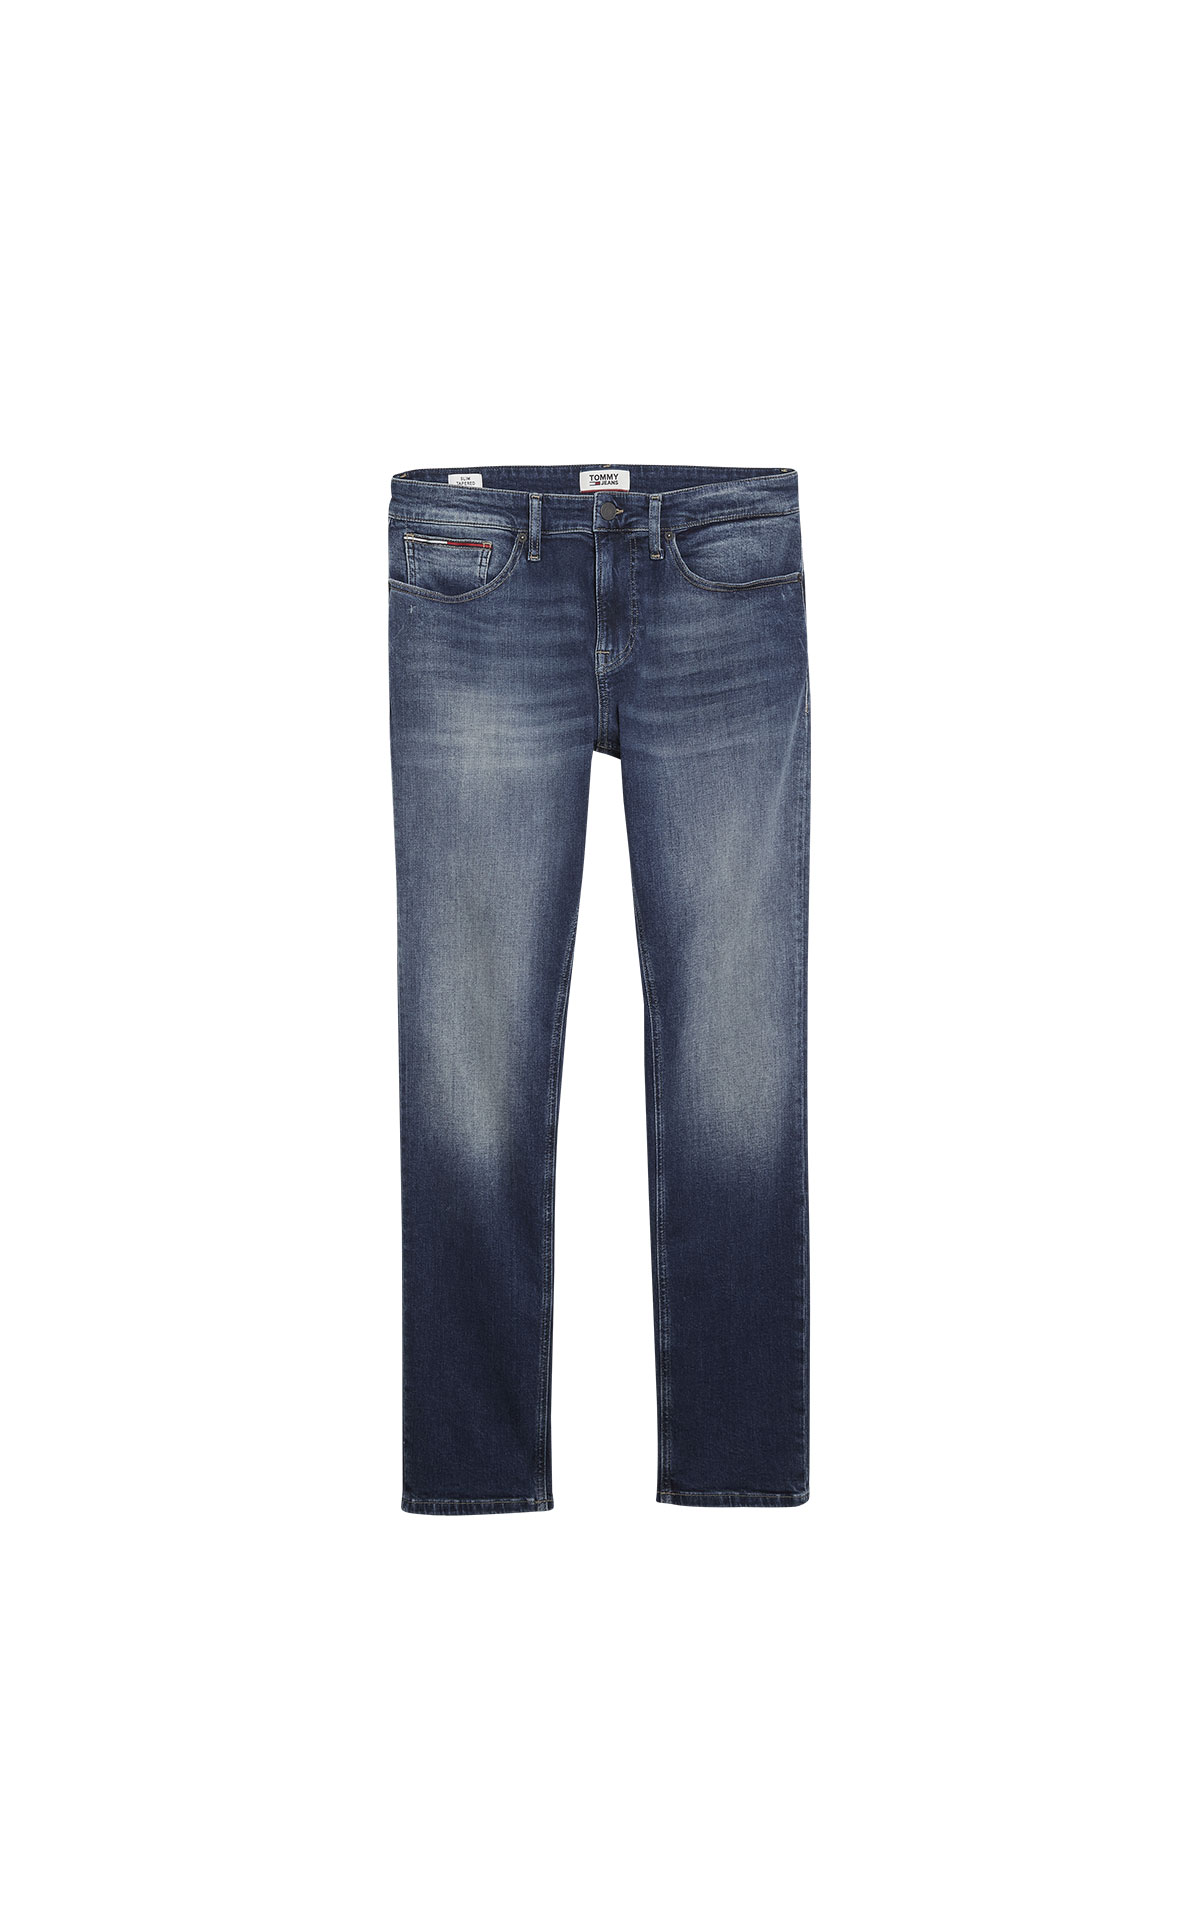 Tommy hilfiger denim modern tapered jeans at The Bicester Village Shopping Collection